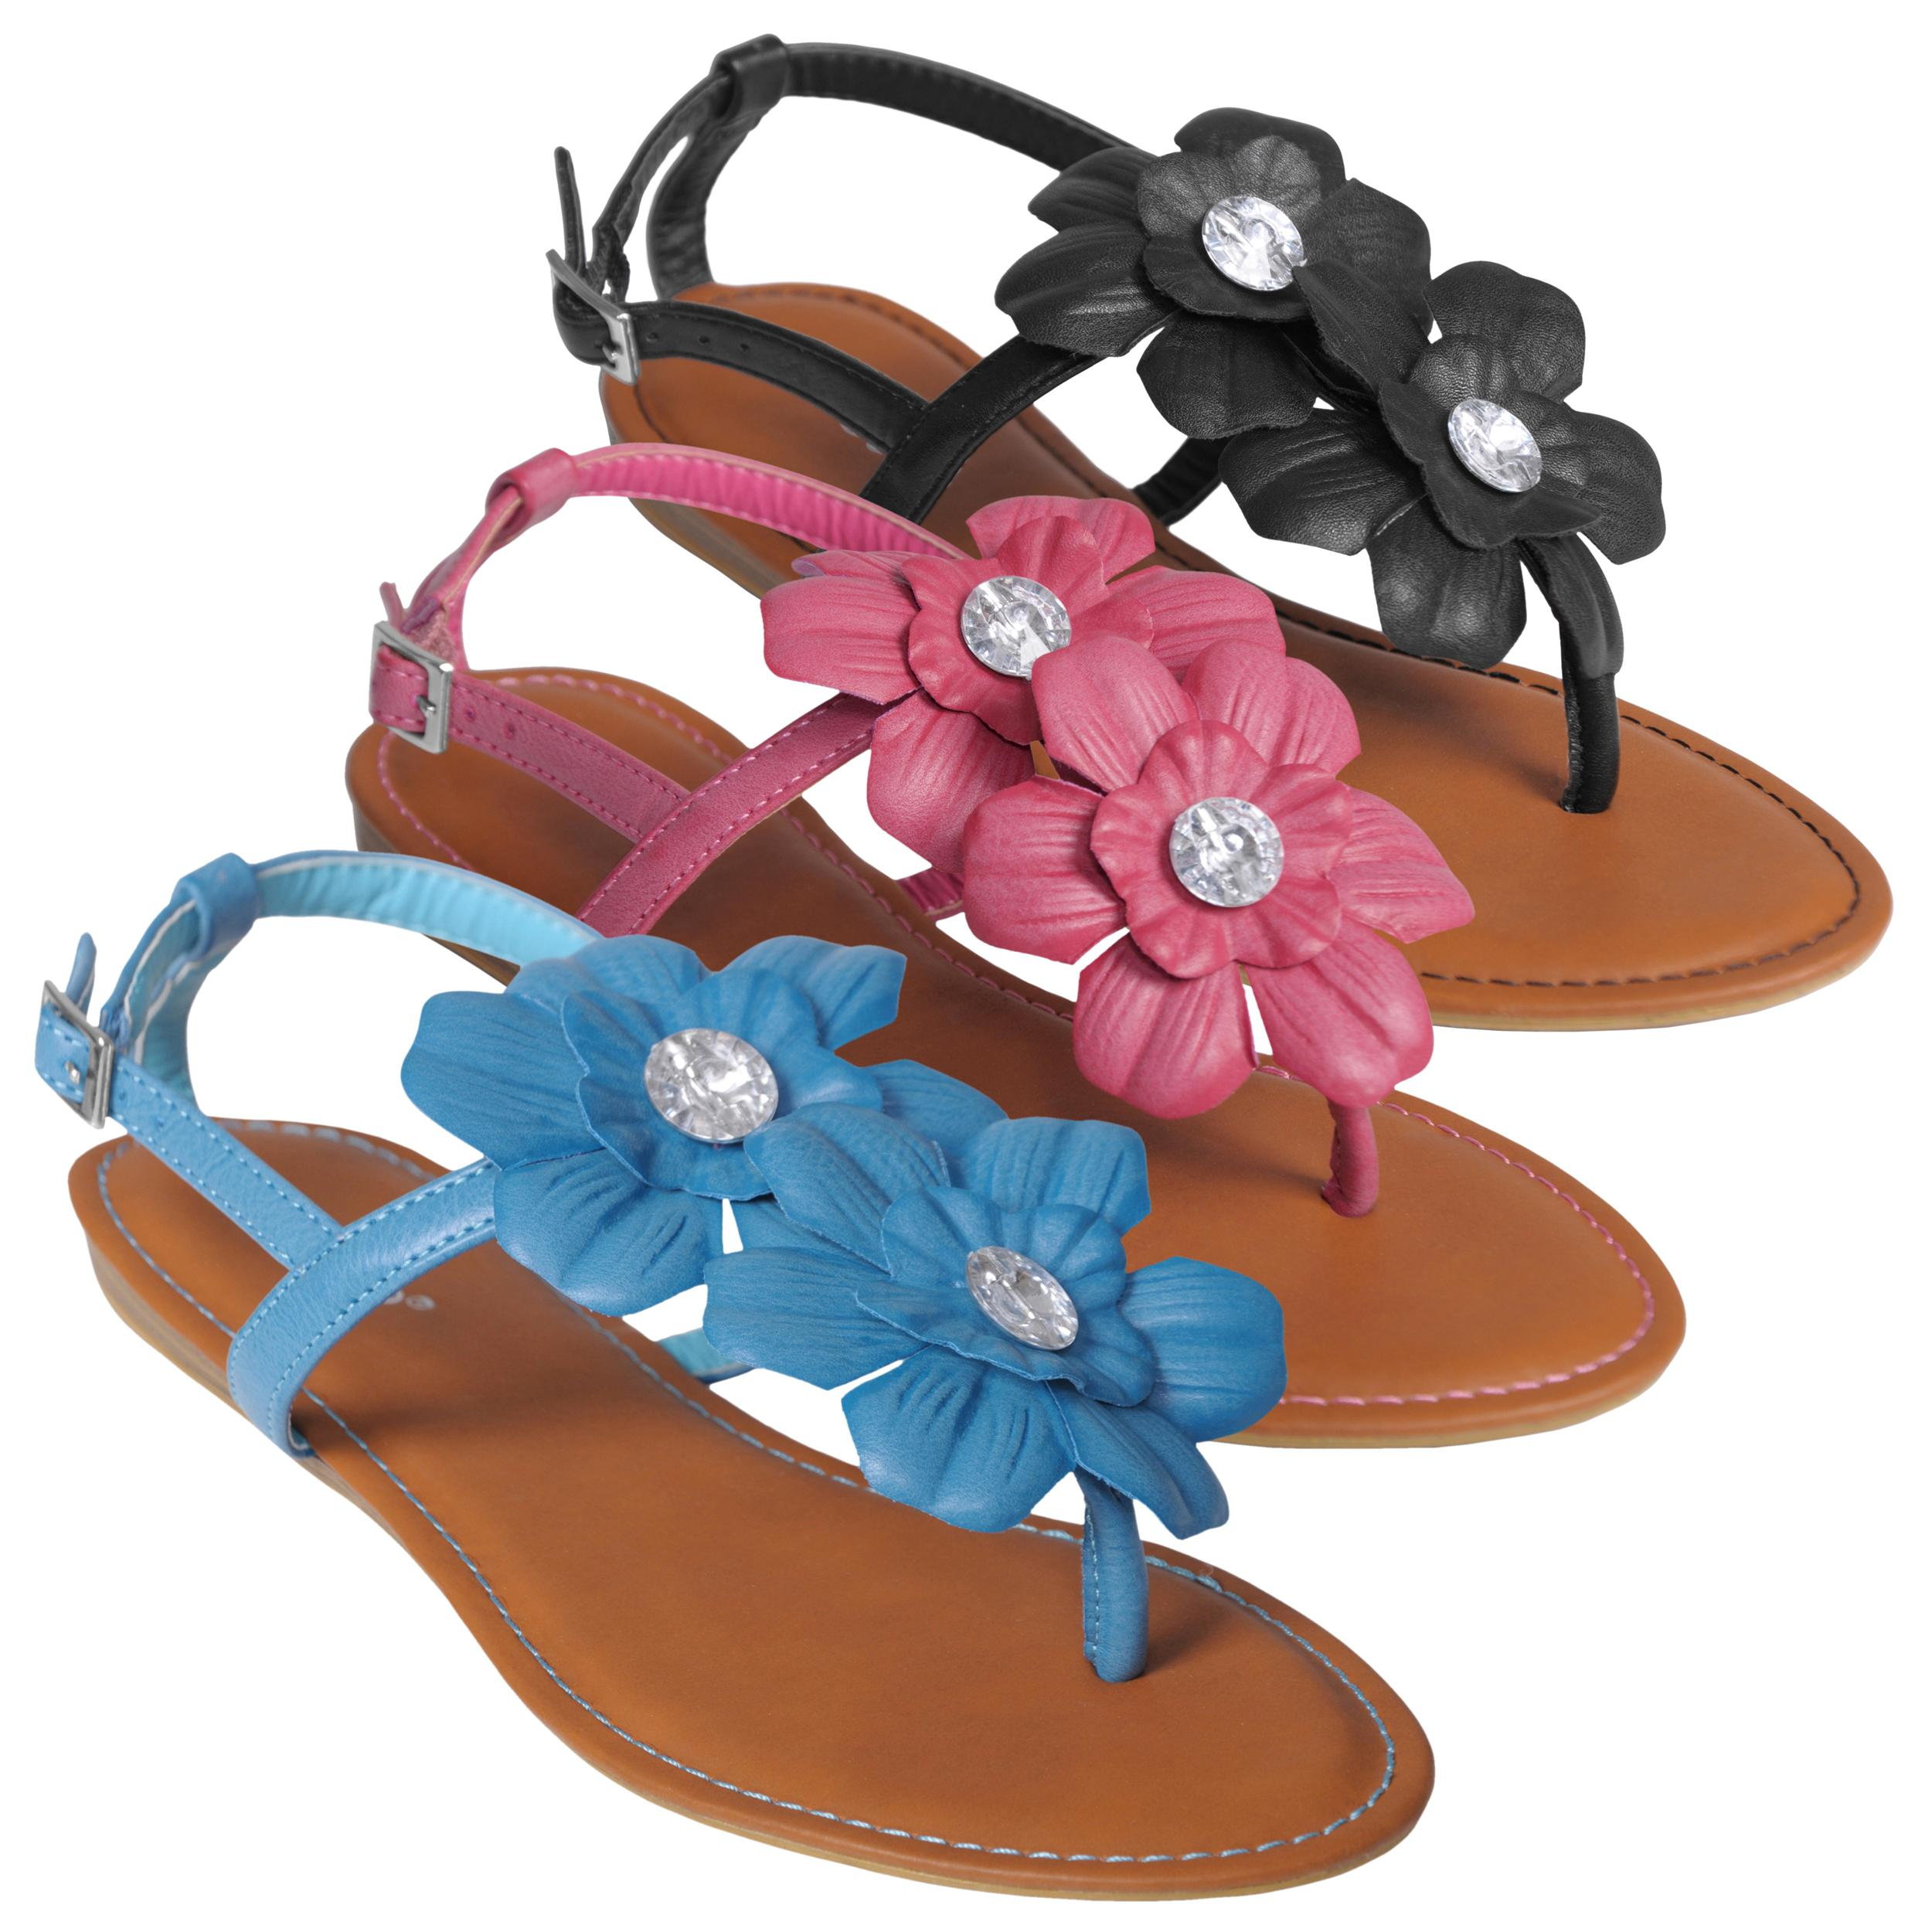 Journee Collection Women's 'Morning-17' Floral Accent T-strap Sandals